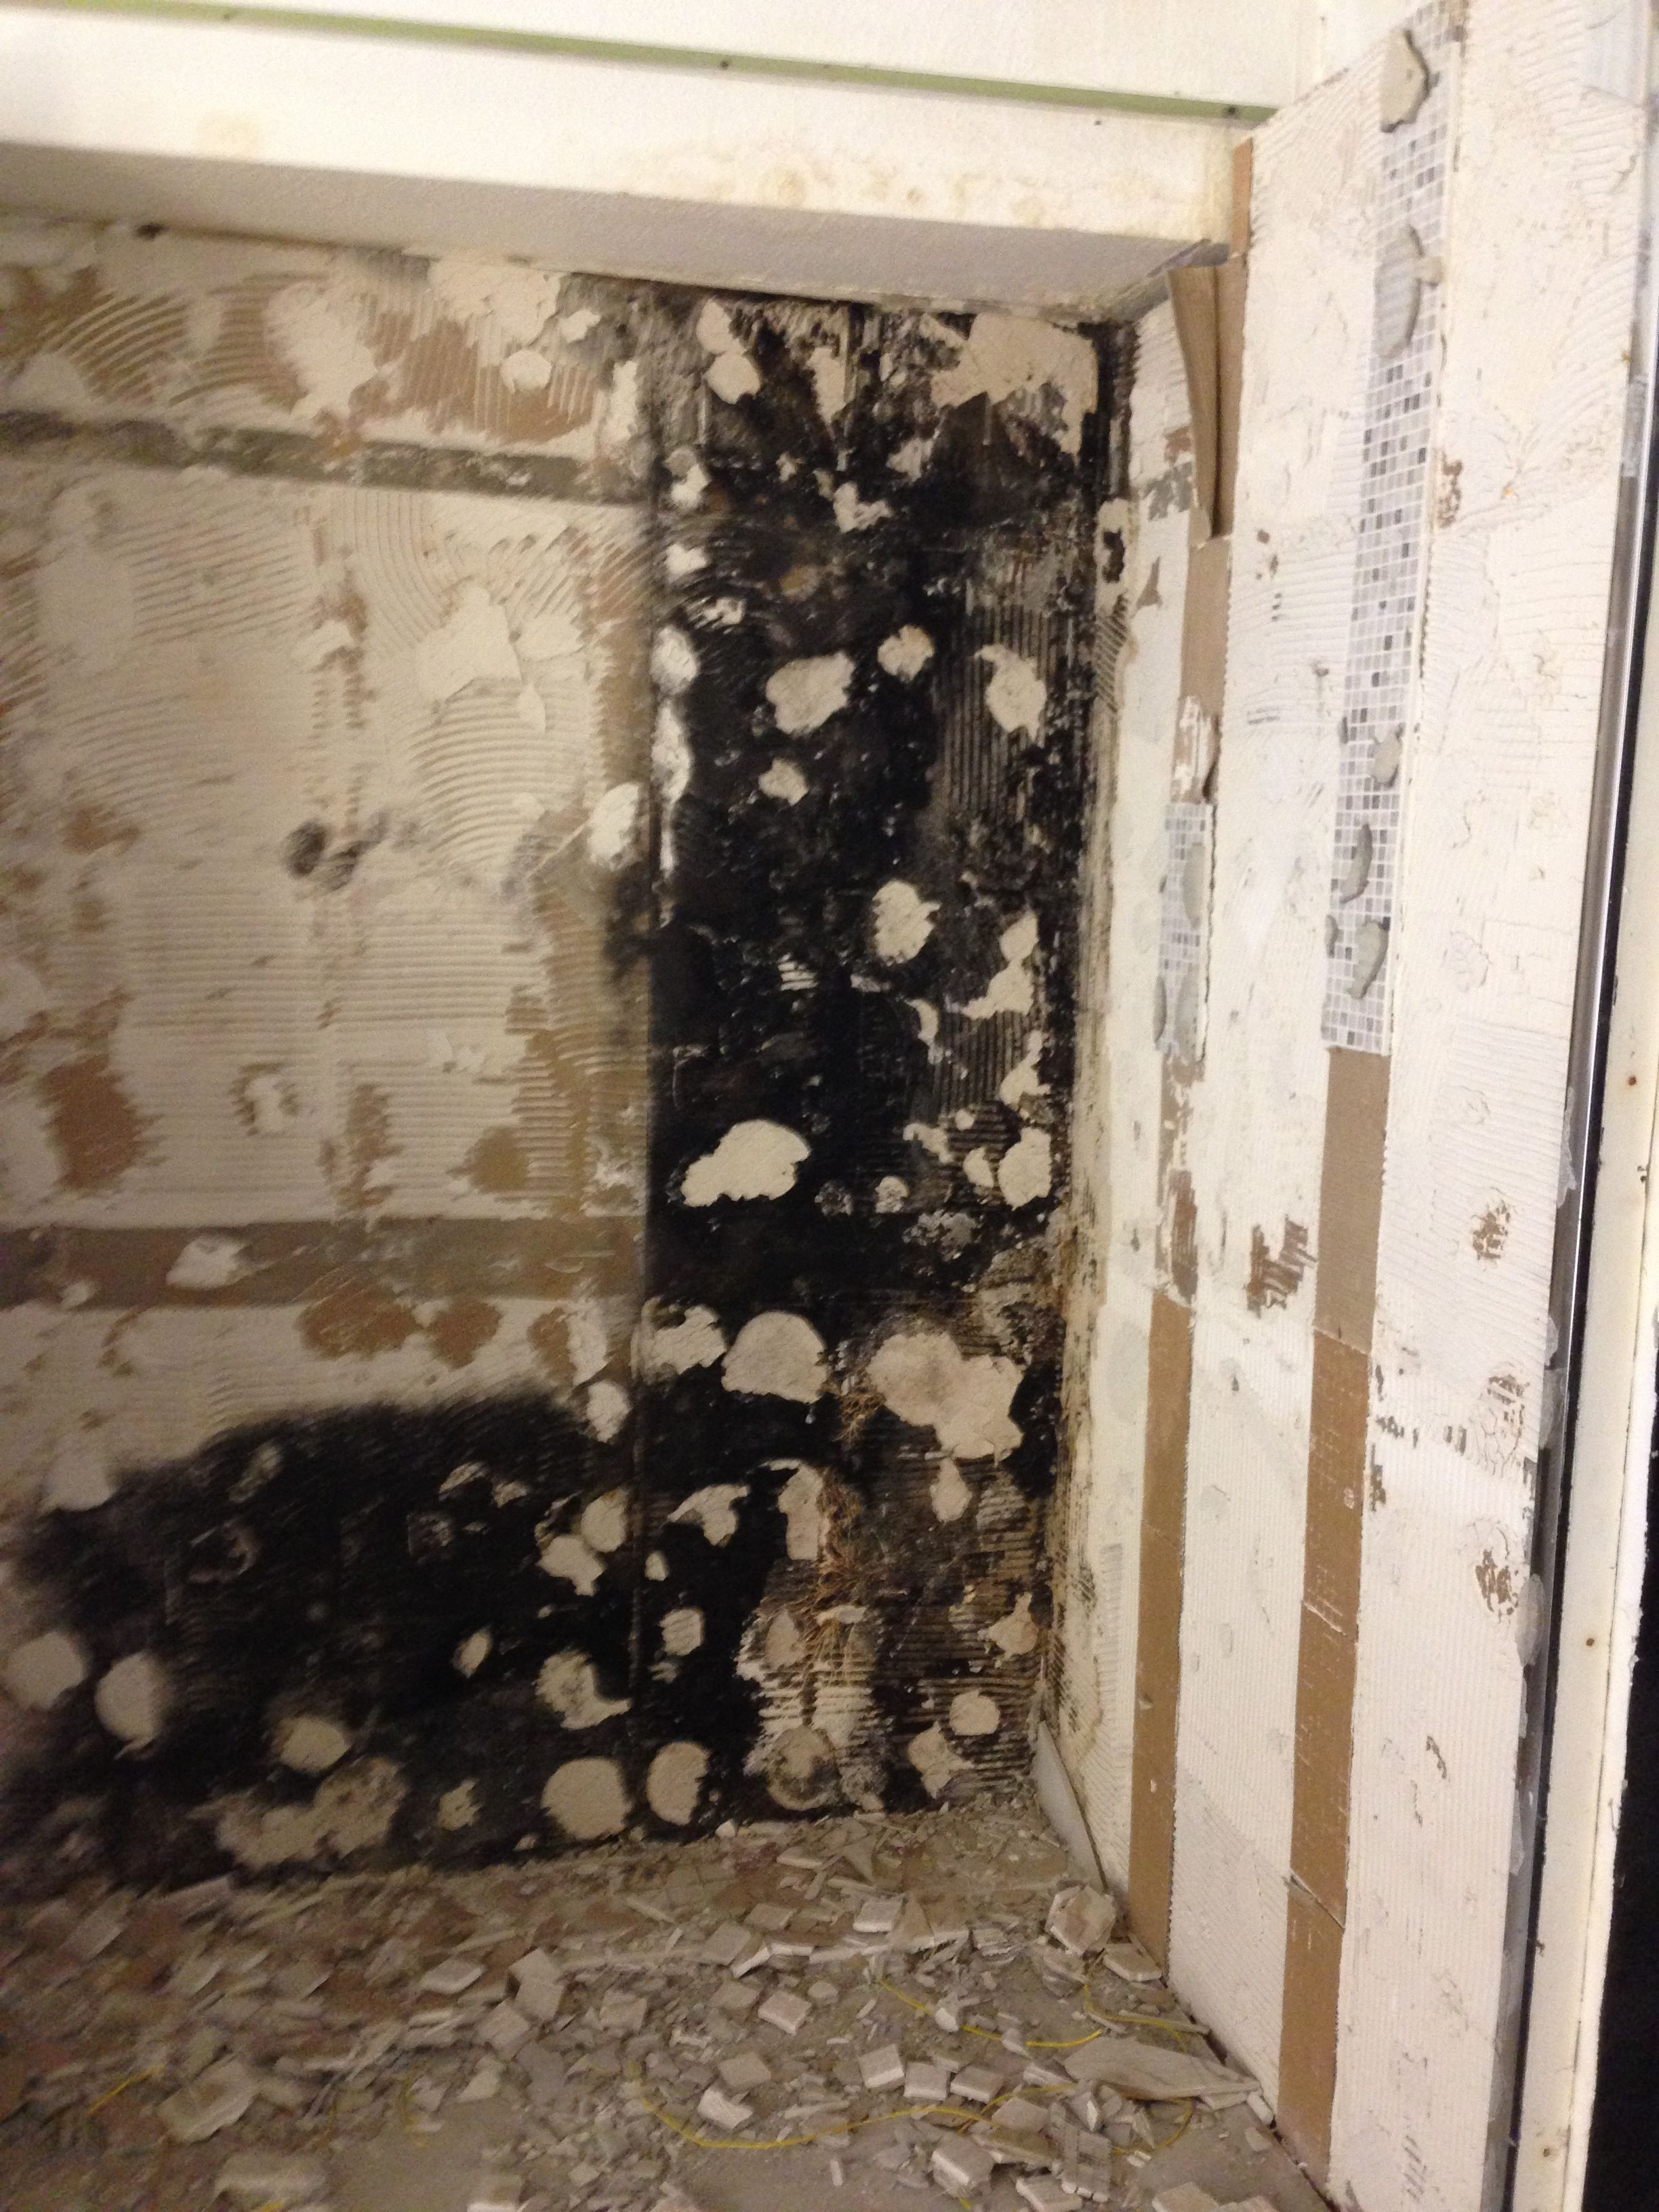 With The Last False Wall The Extent Of The Dry Rot And Damp